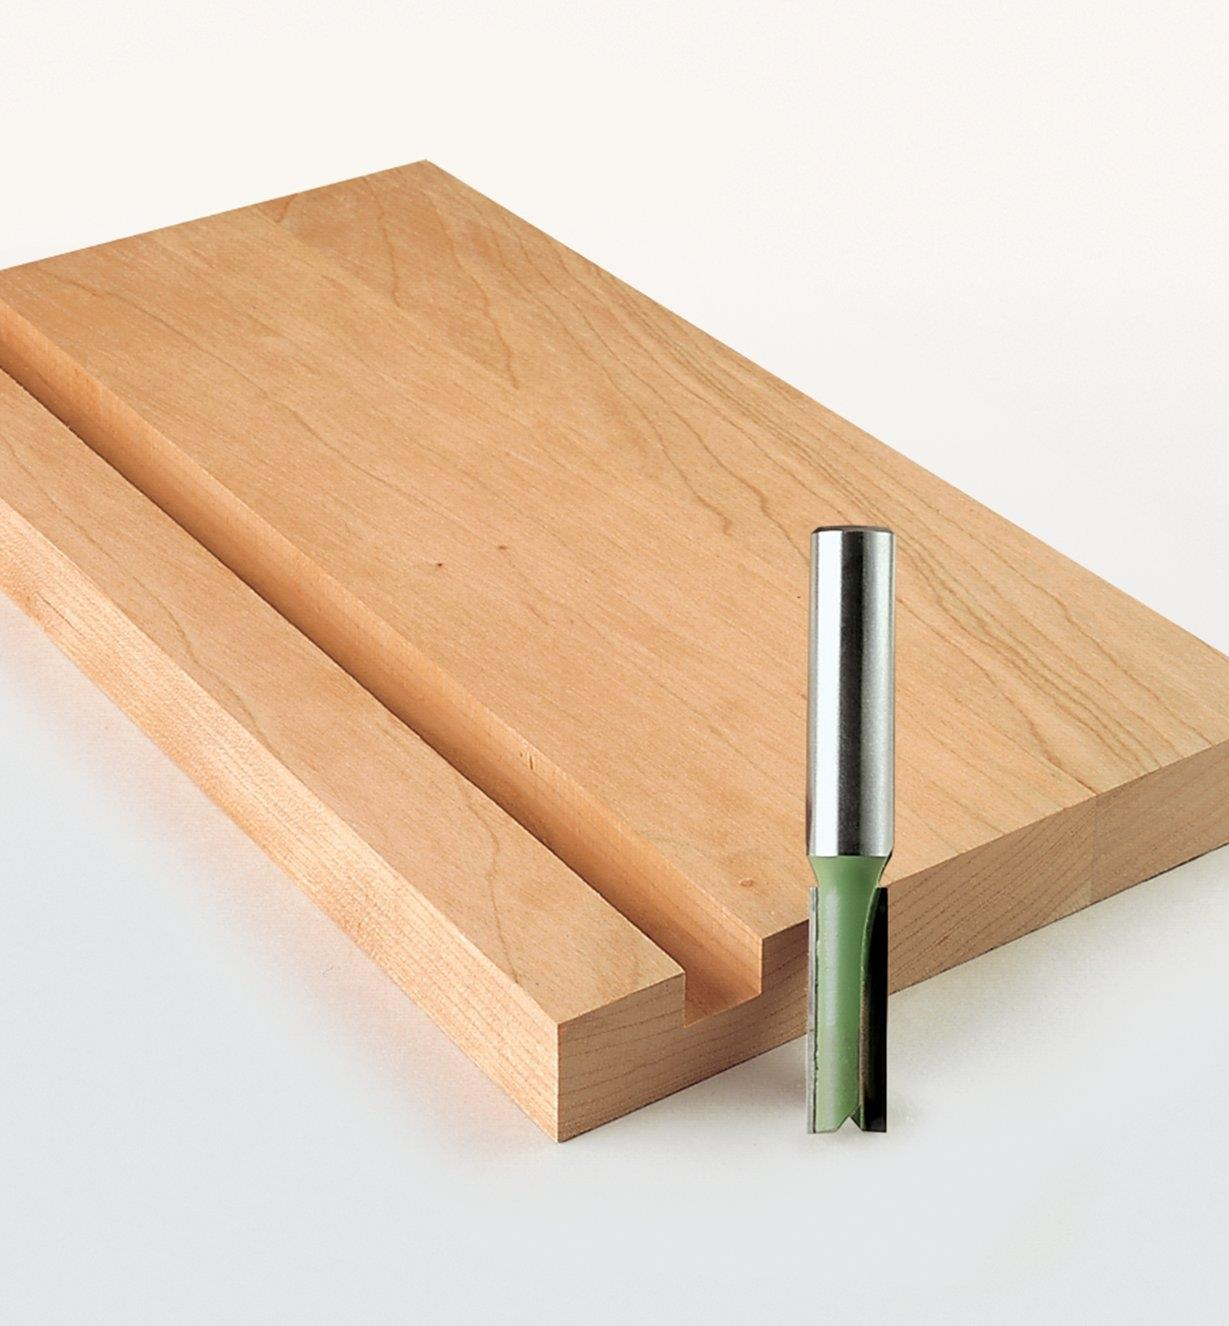 "18J0780 - .313"" x 1.030"" x 8mm Straight Bit for Leigh Jig"